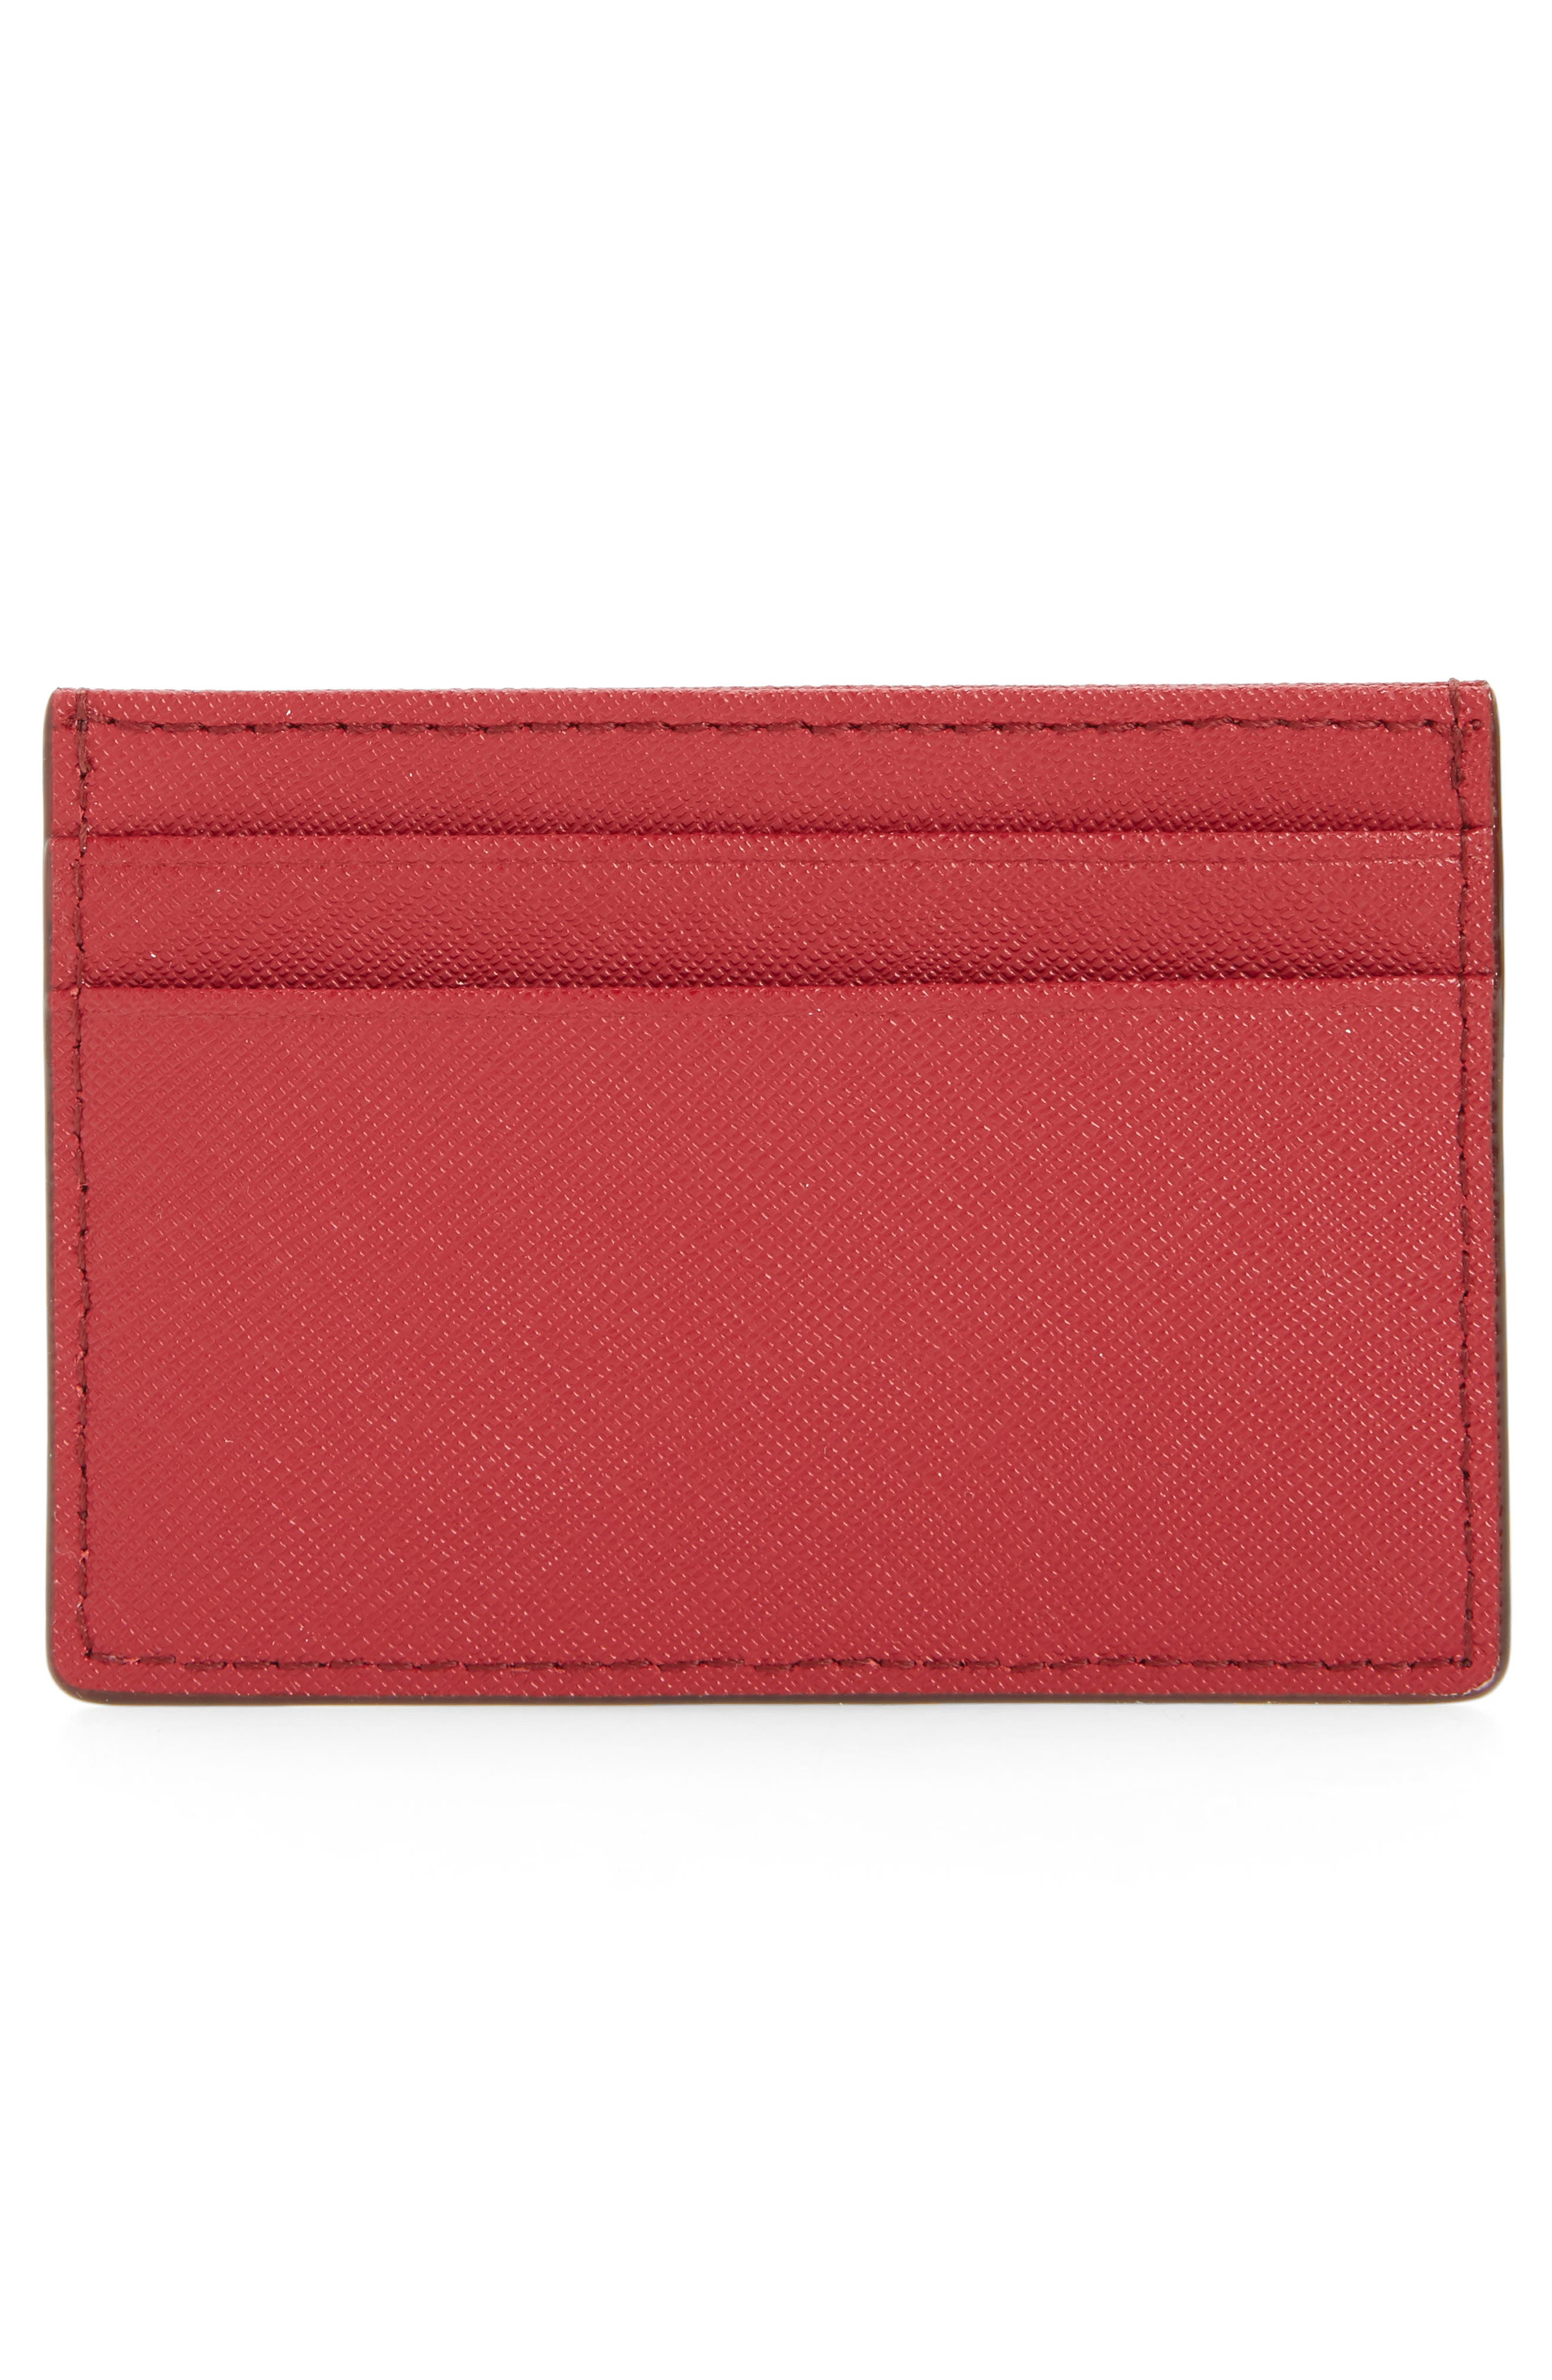 cameron street card holder,                             Alternate thumbnail 17, color,